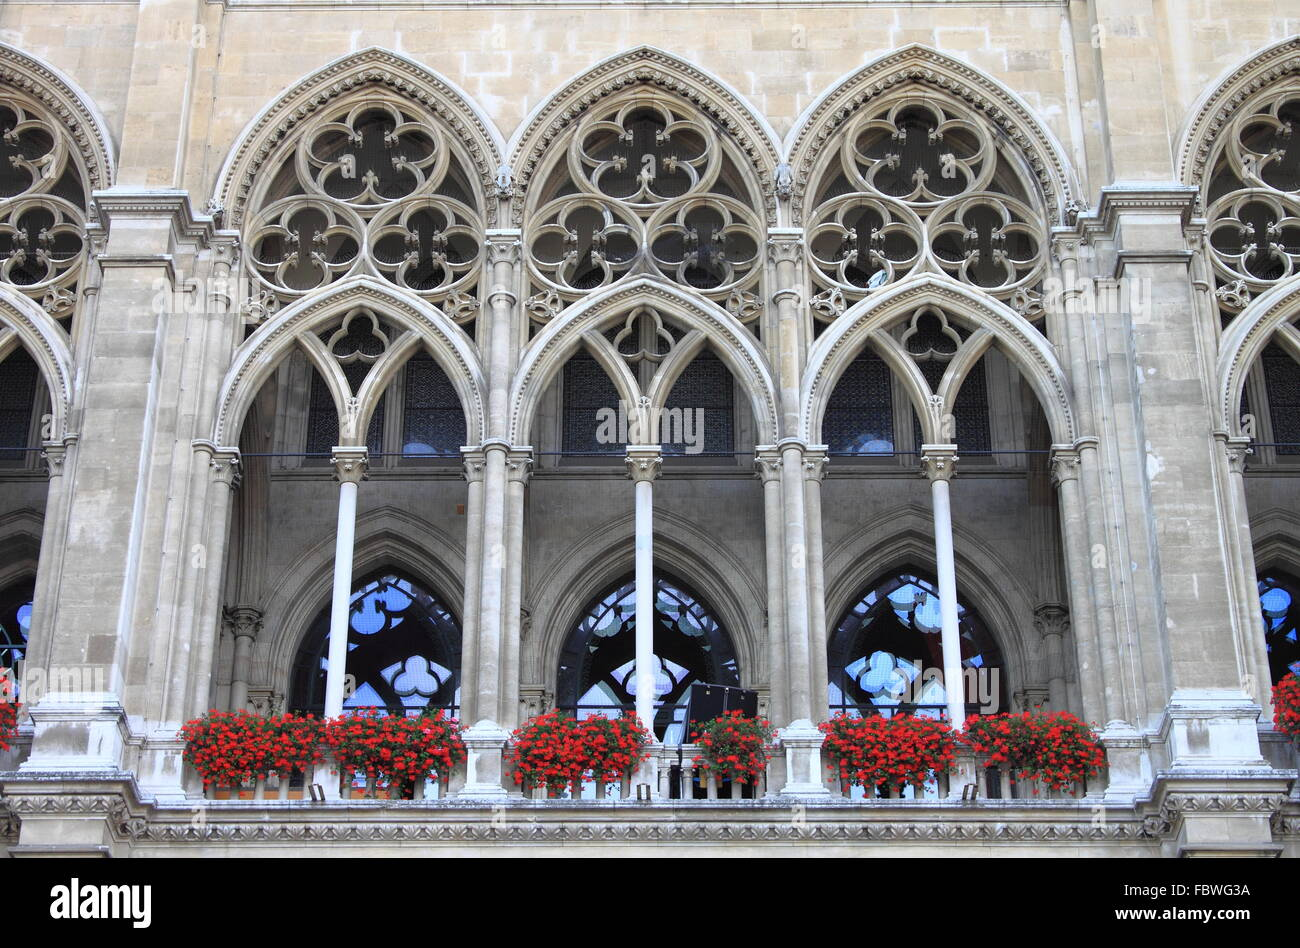 Arches of Vienna City Hall building, Austria - Stock Image